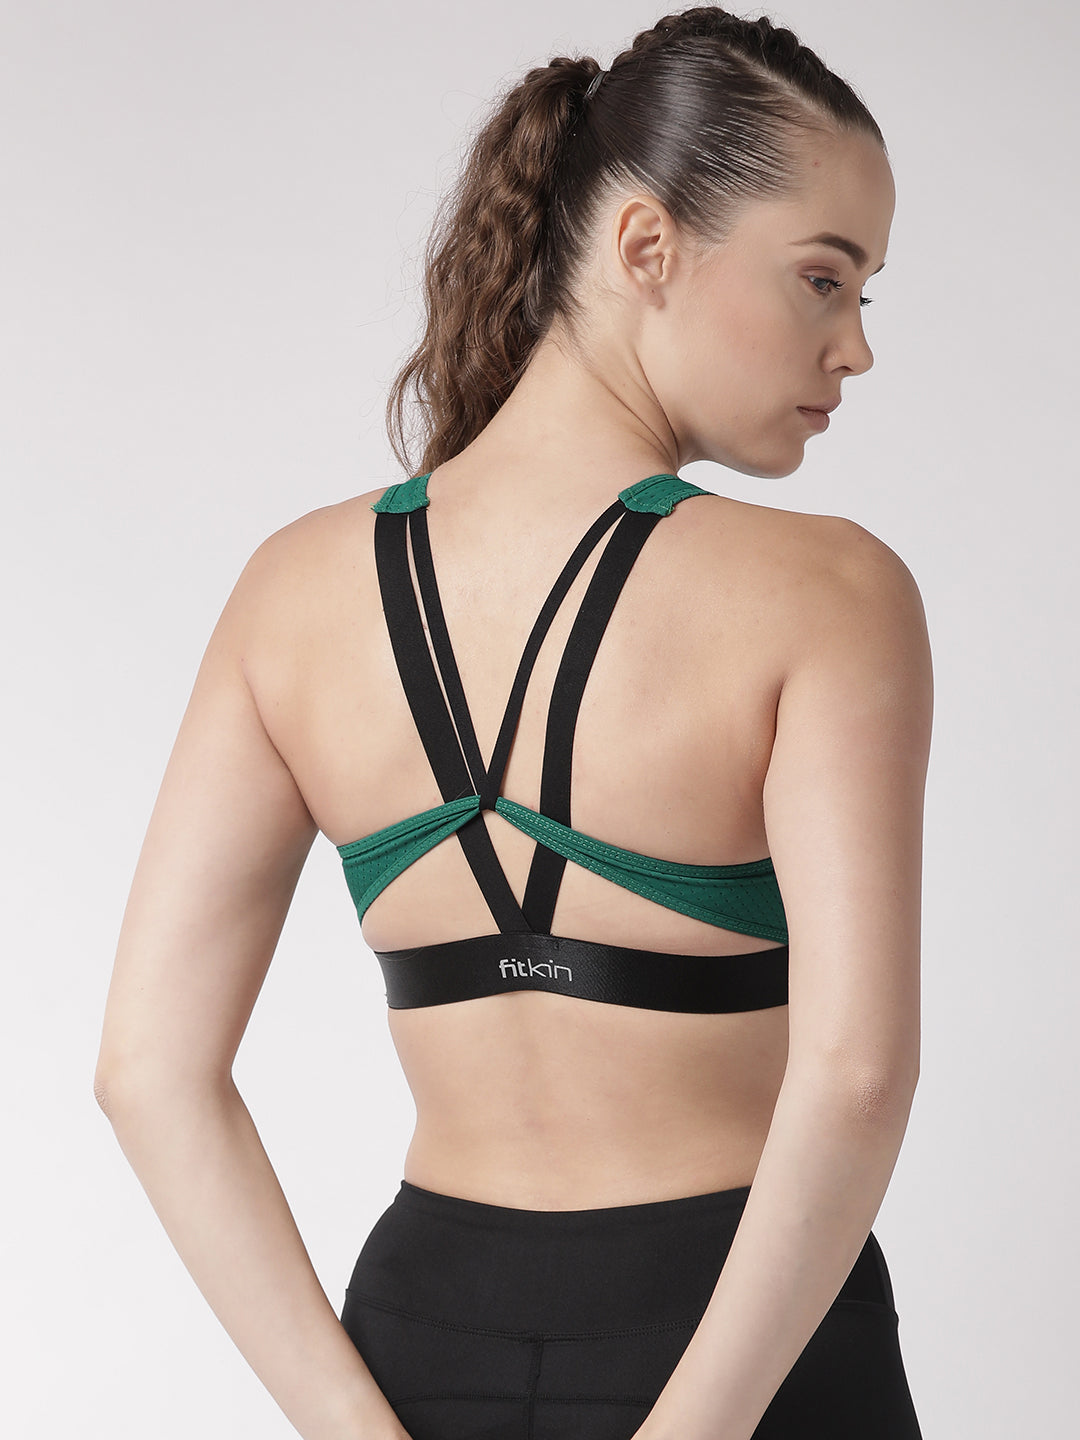 Fitkin Green Solid Non-Wired Lightly Padded Sports Bra